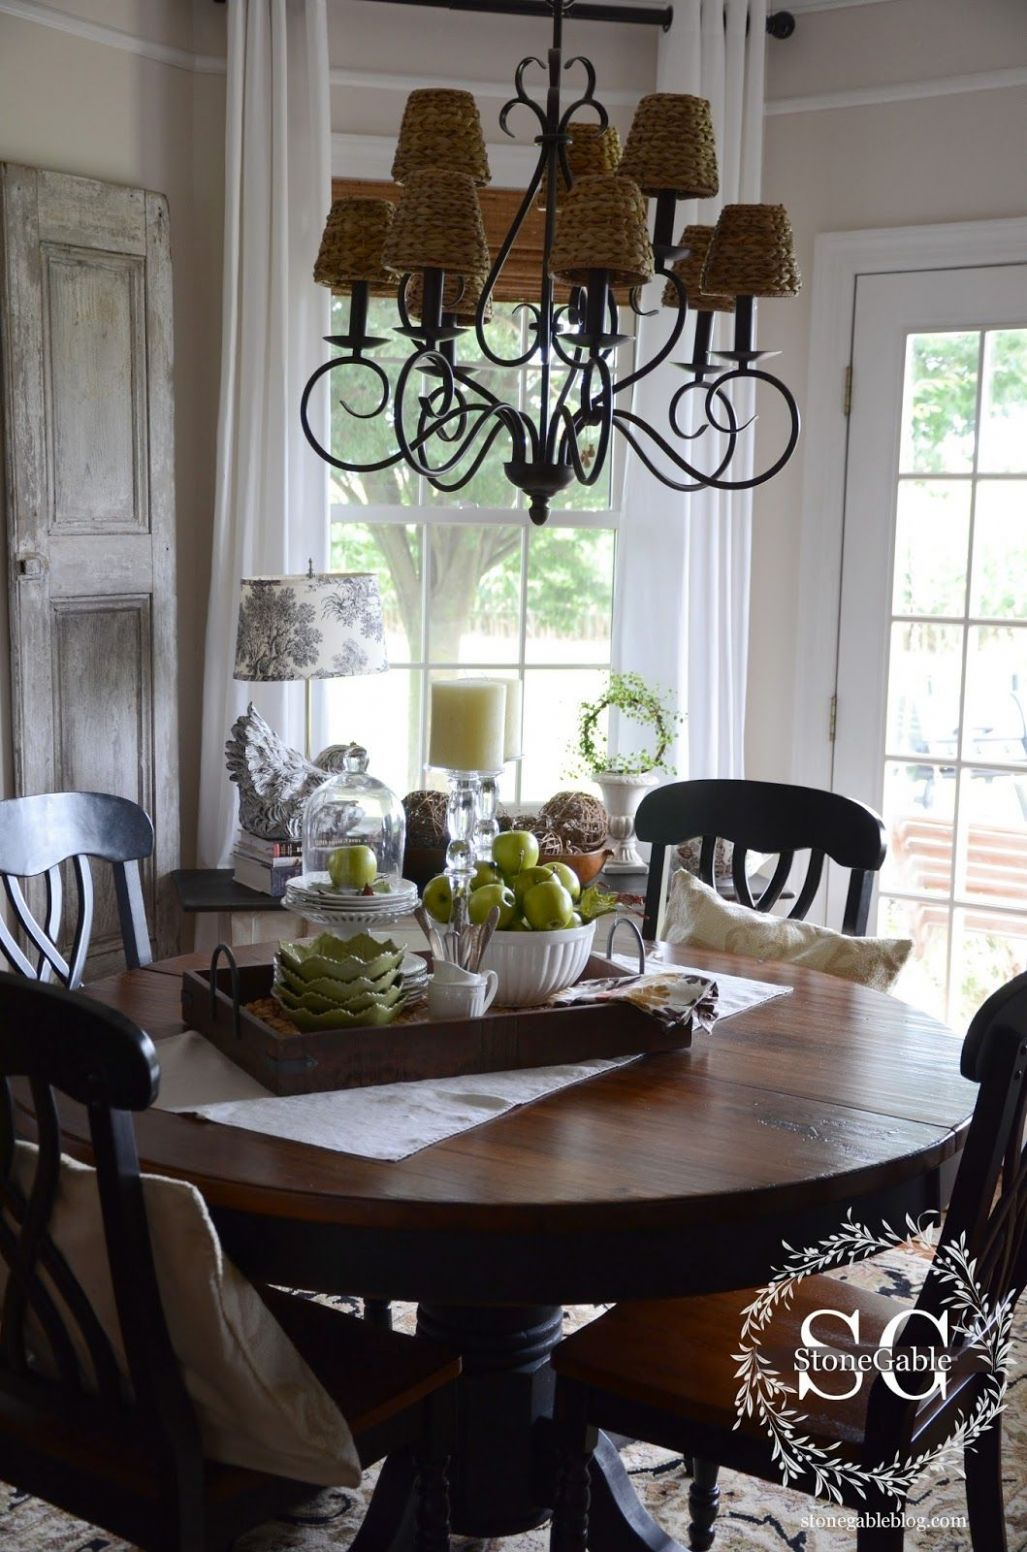 Dining Table Decor for an Everyday Look | Dining room table ...